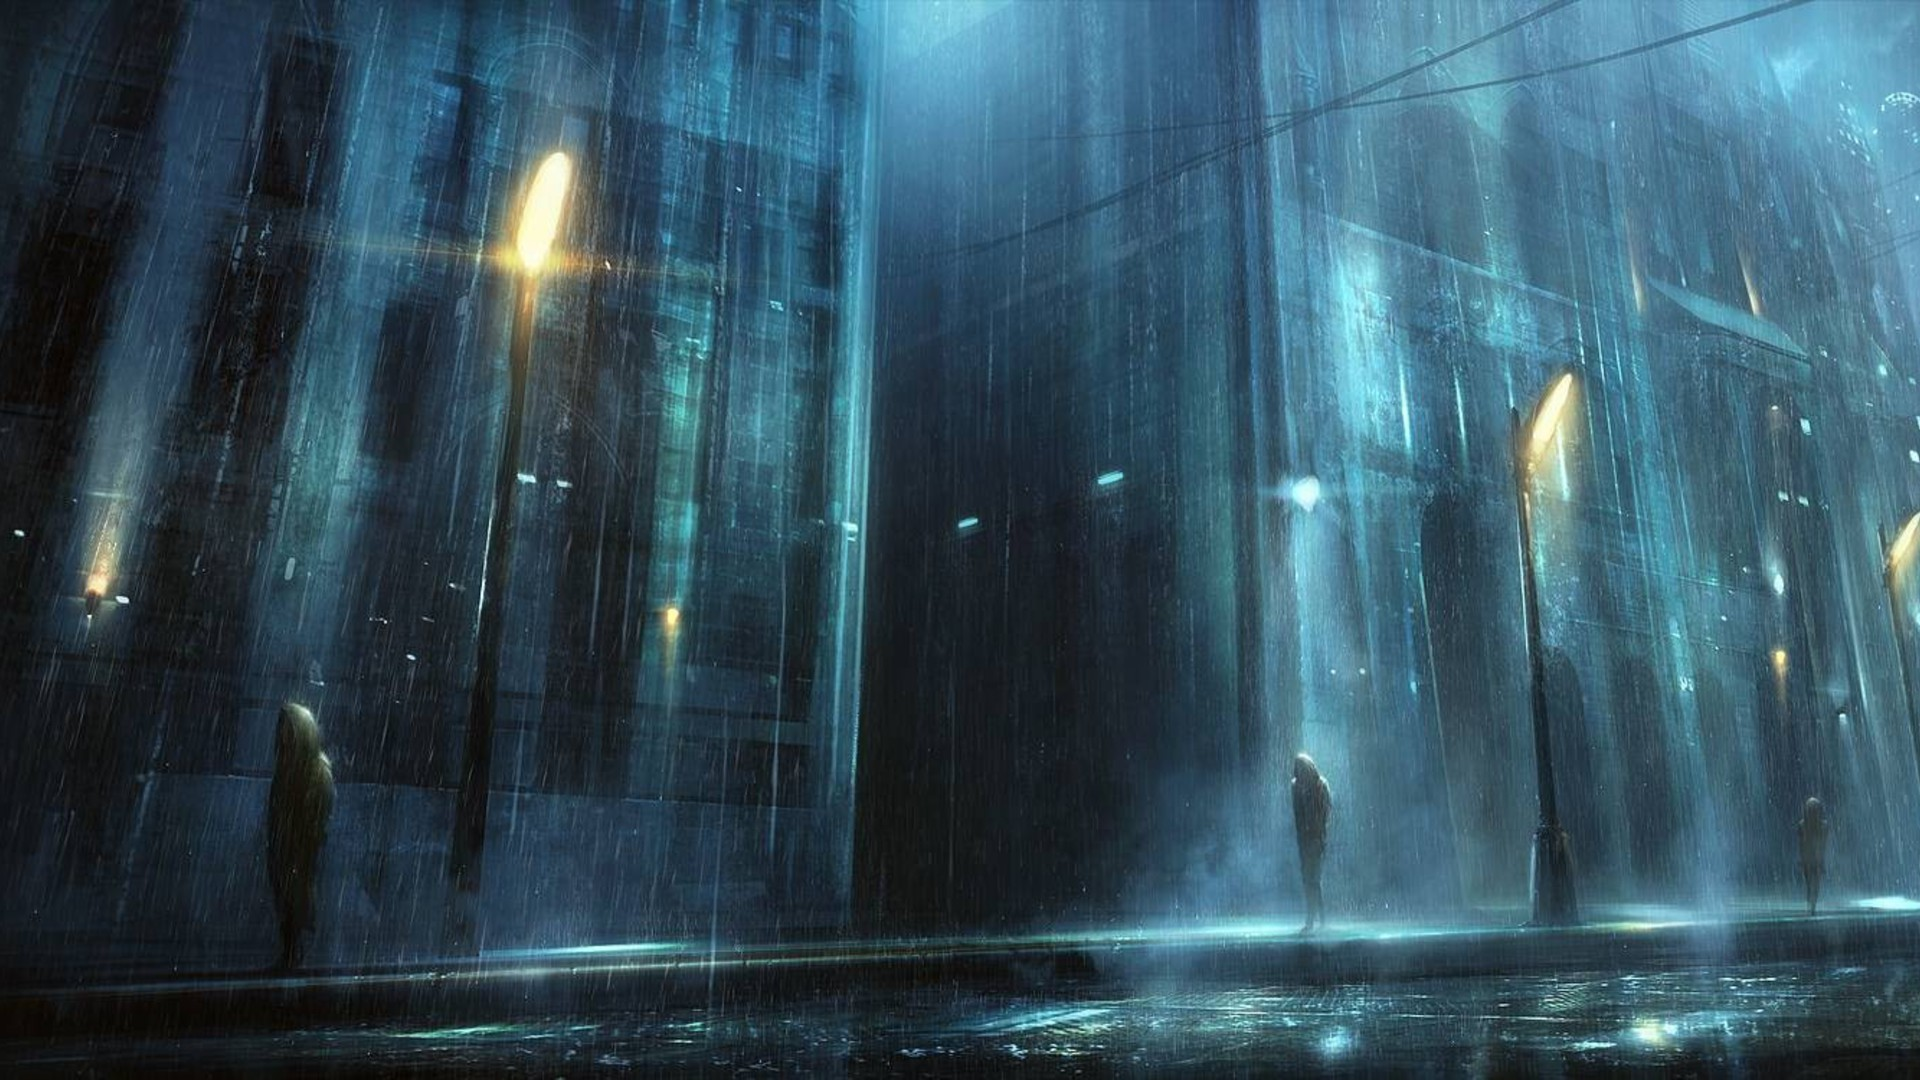 Night rain artwork cities wallpaper - Anime rain wallpaper ...